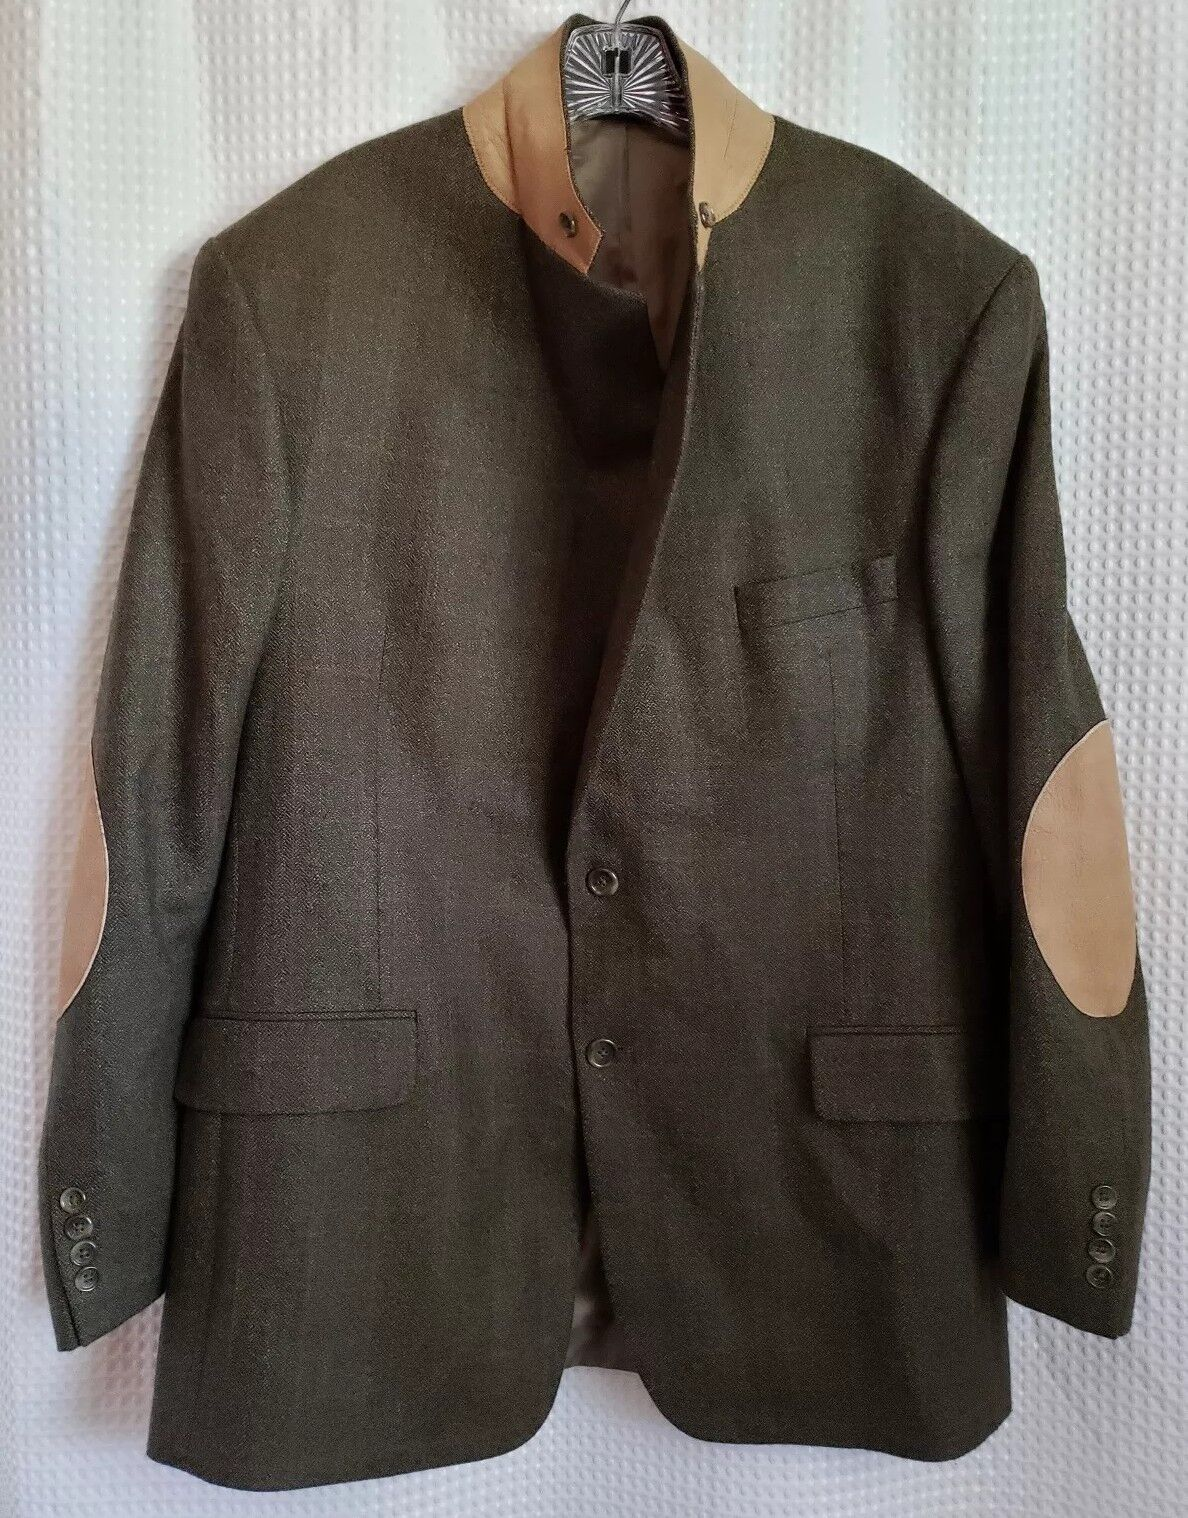 Evan Picone Foley's 44L Wool Sport Coat Blazer Elbow Patches Faux Leder Trim